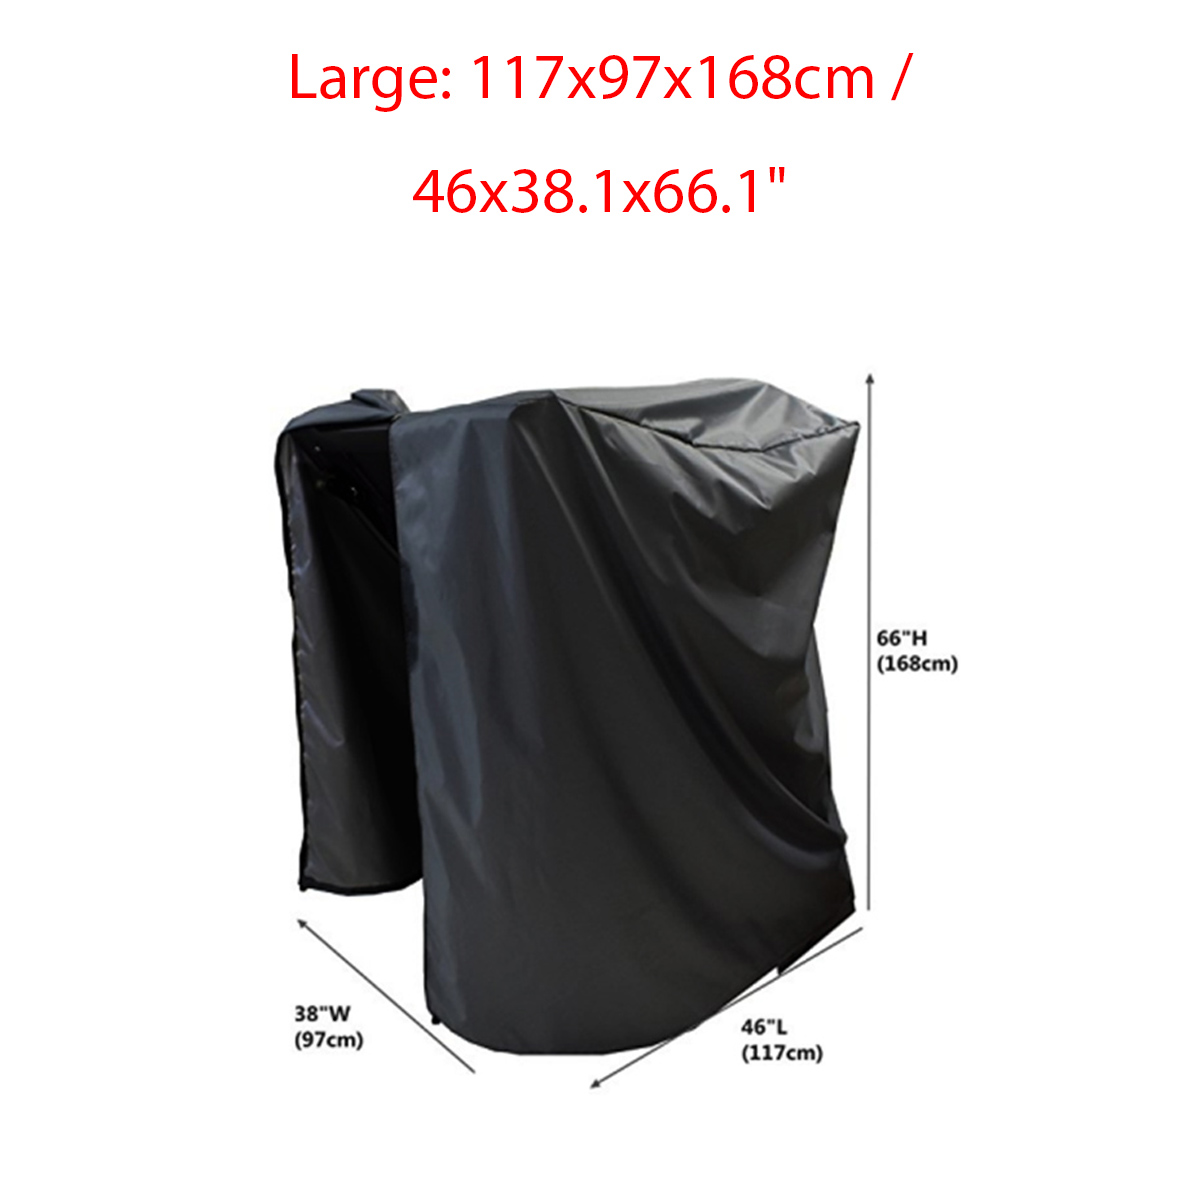 2-Sizes-Treadmill-Cover-Folding-Running-Machine-Protective-Dust-Cover-Waterproof